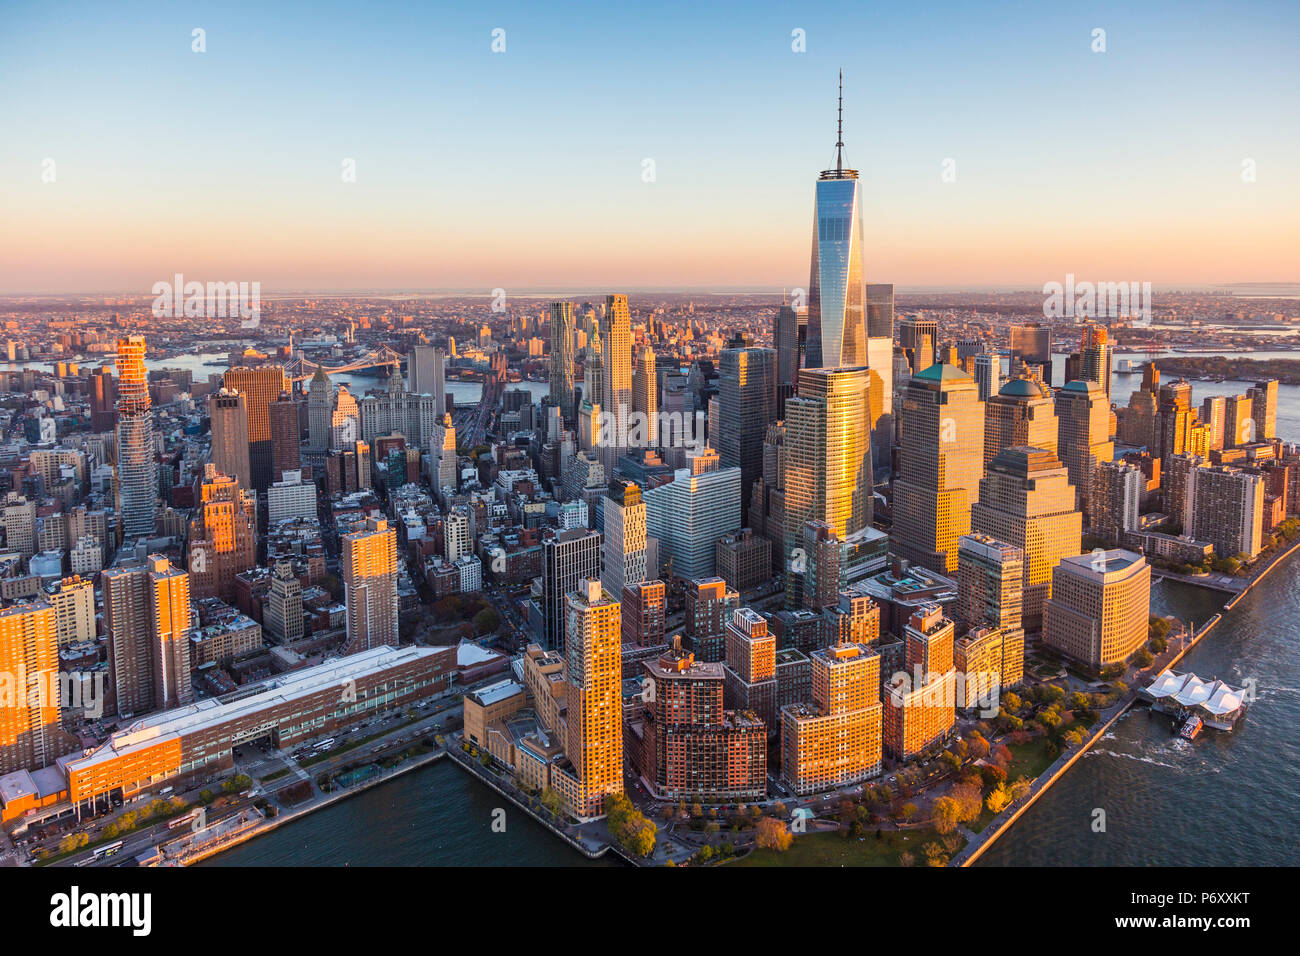 Le centre-ville de Manhattan, New York City, USA Photo Stock